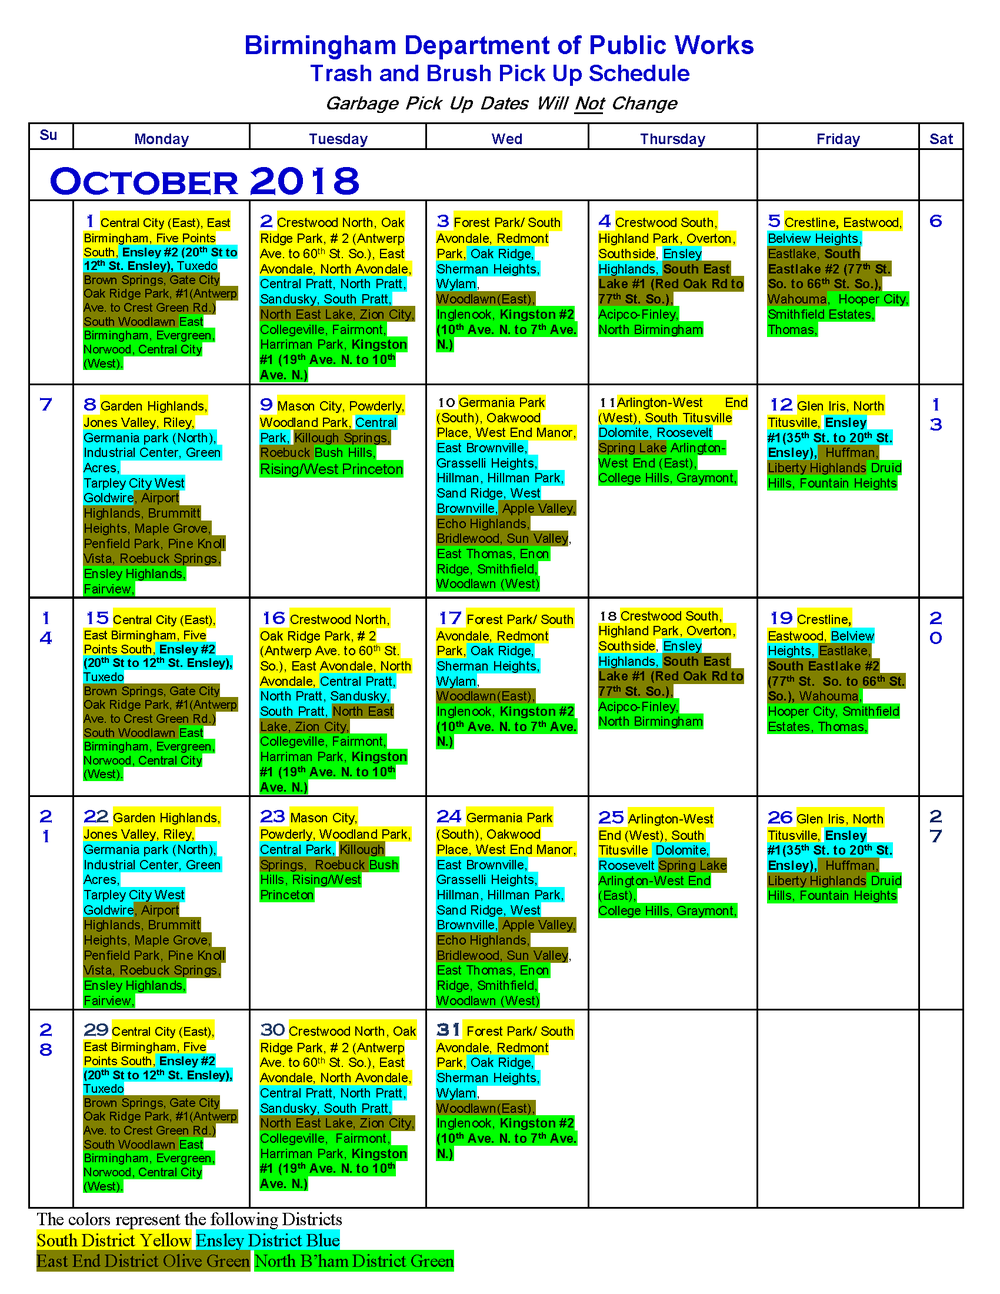 19-October, 2018 trash and brush schedule.png